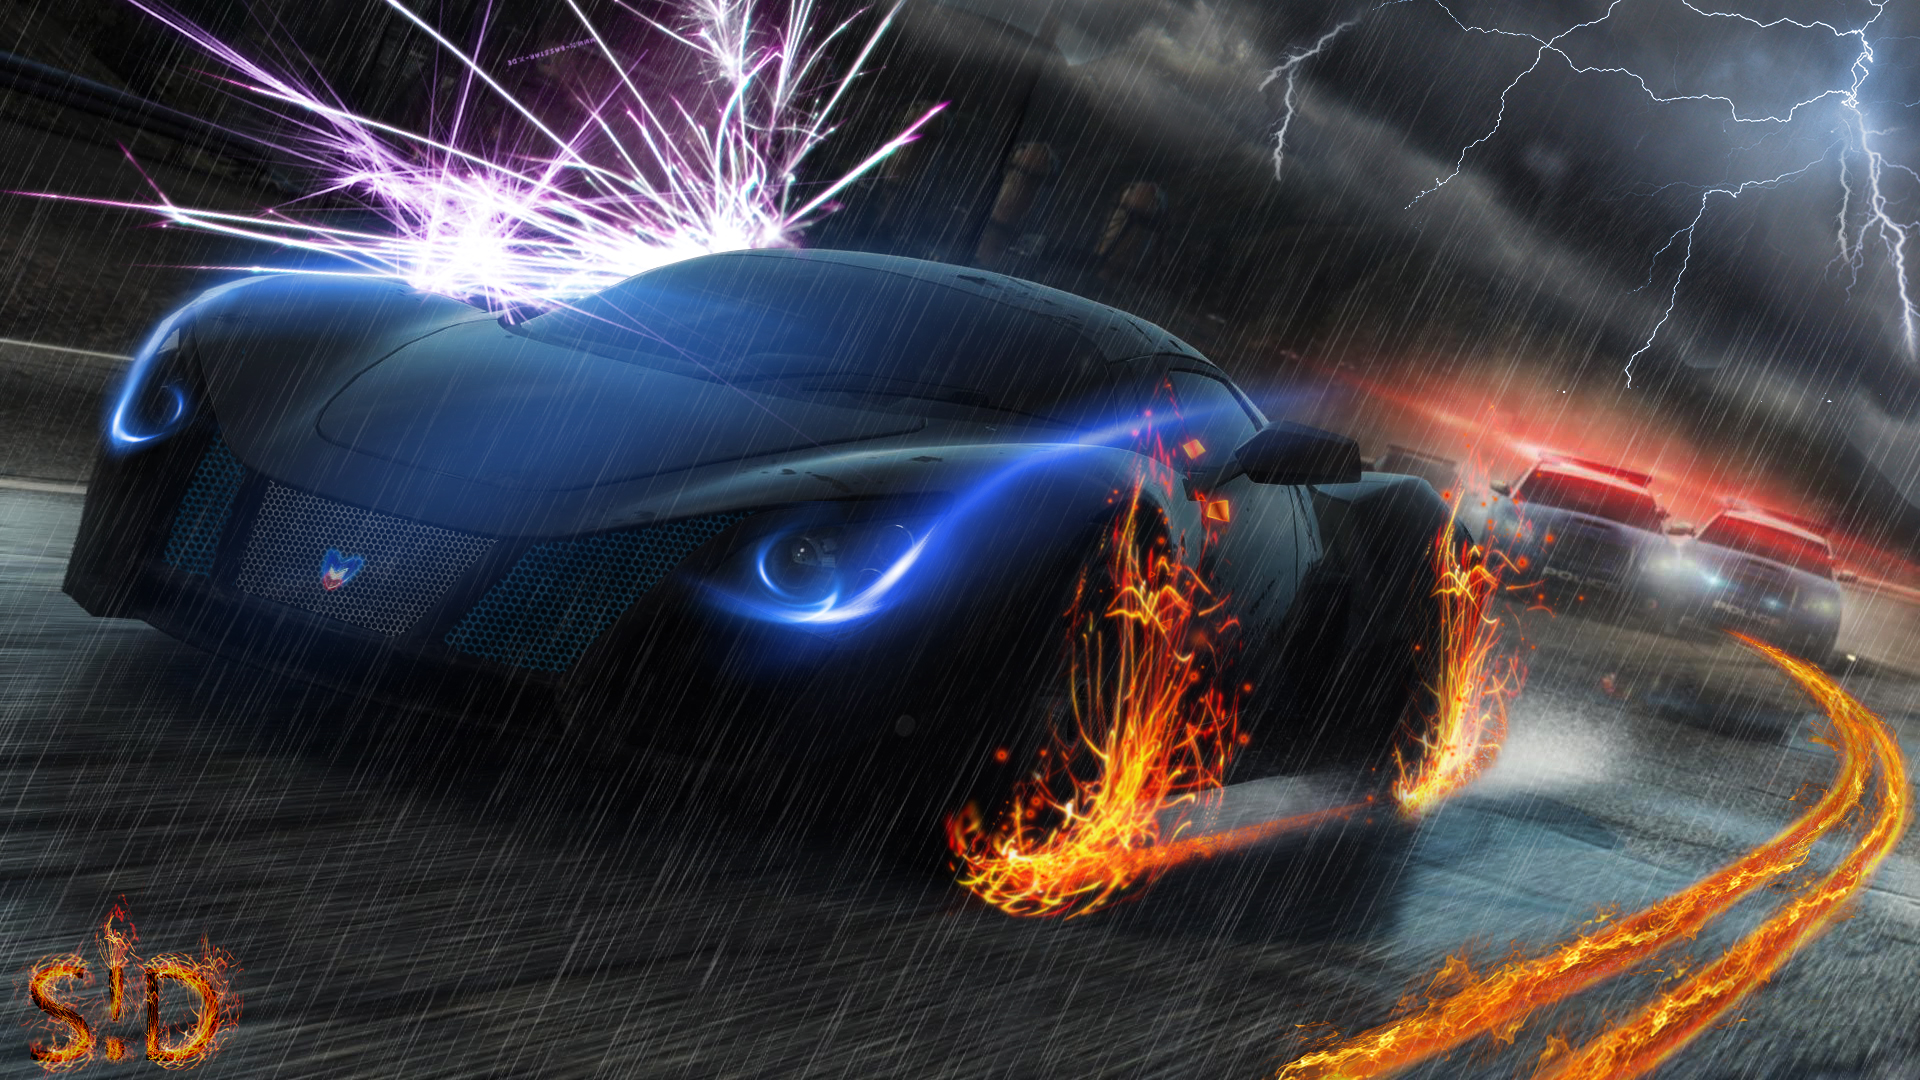 Full Hd Car Wallpapers 1080p Bmw Need For Speed Most Wanted Full Hd Wallpaper And